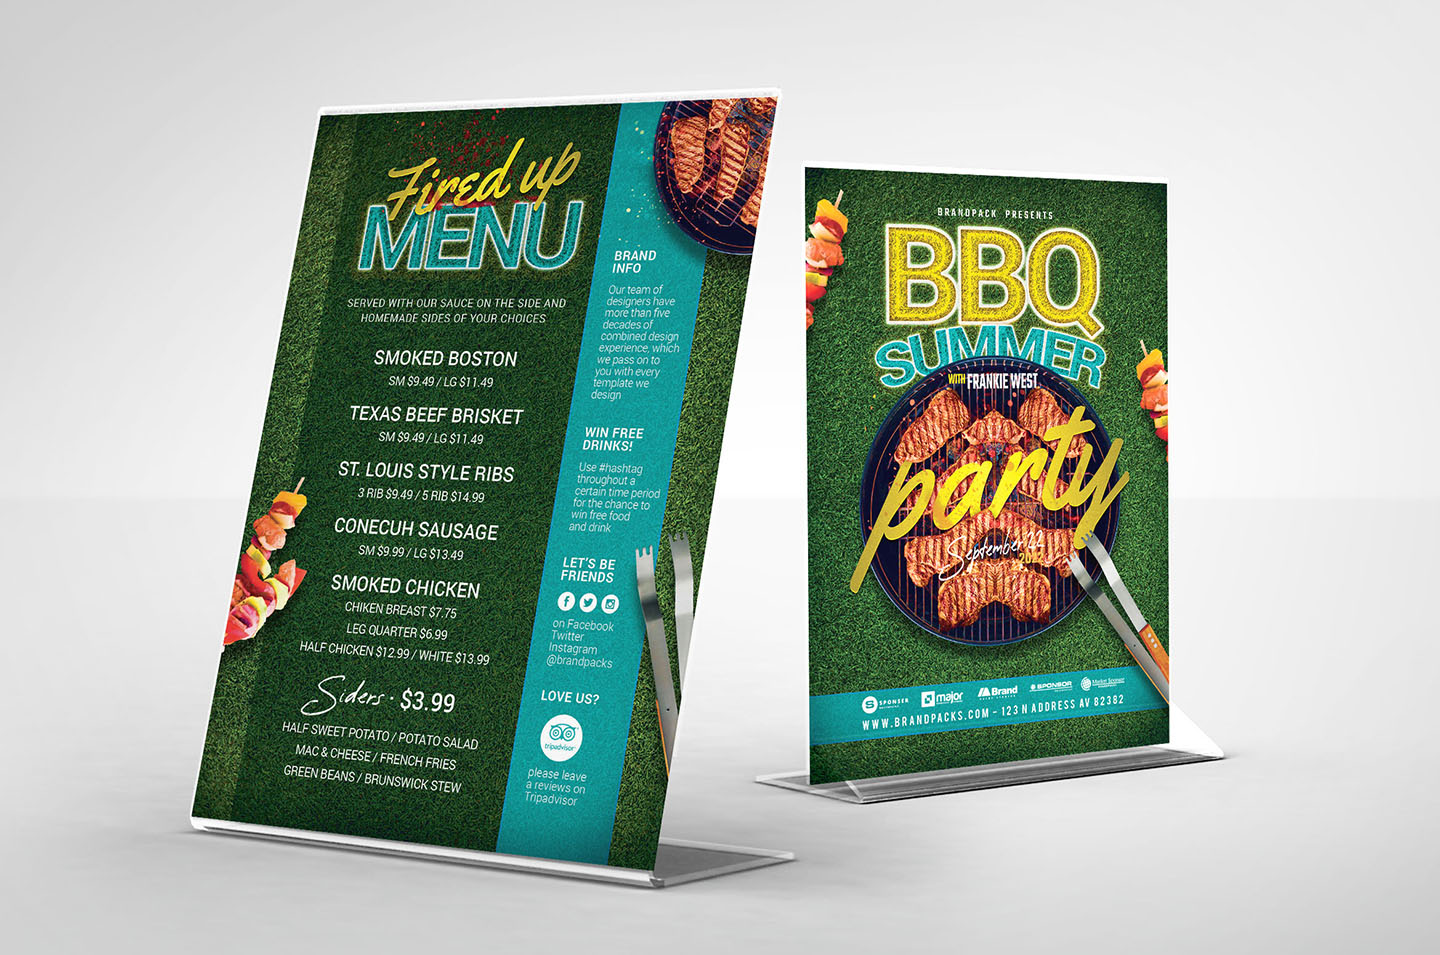 BBQ Cookout Flyer Template example image 2